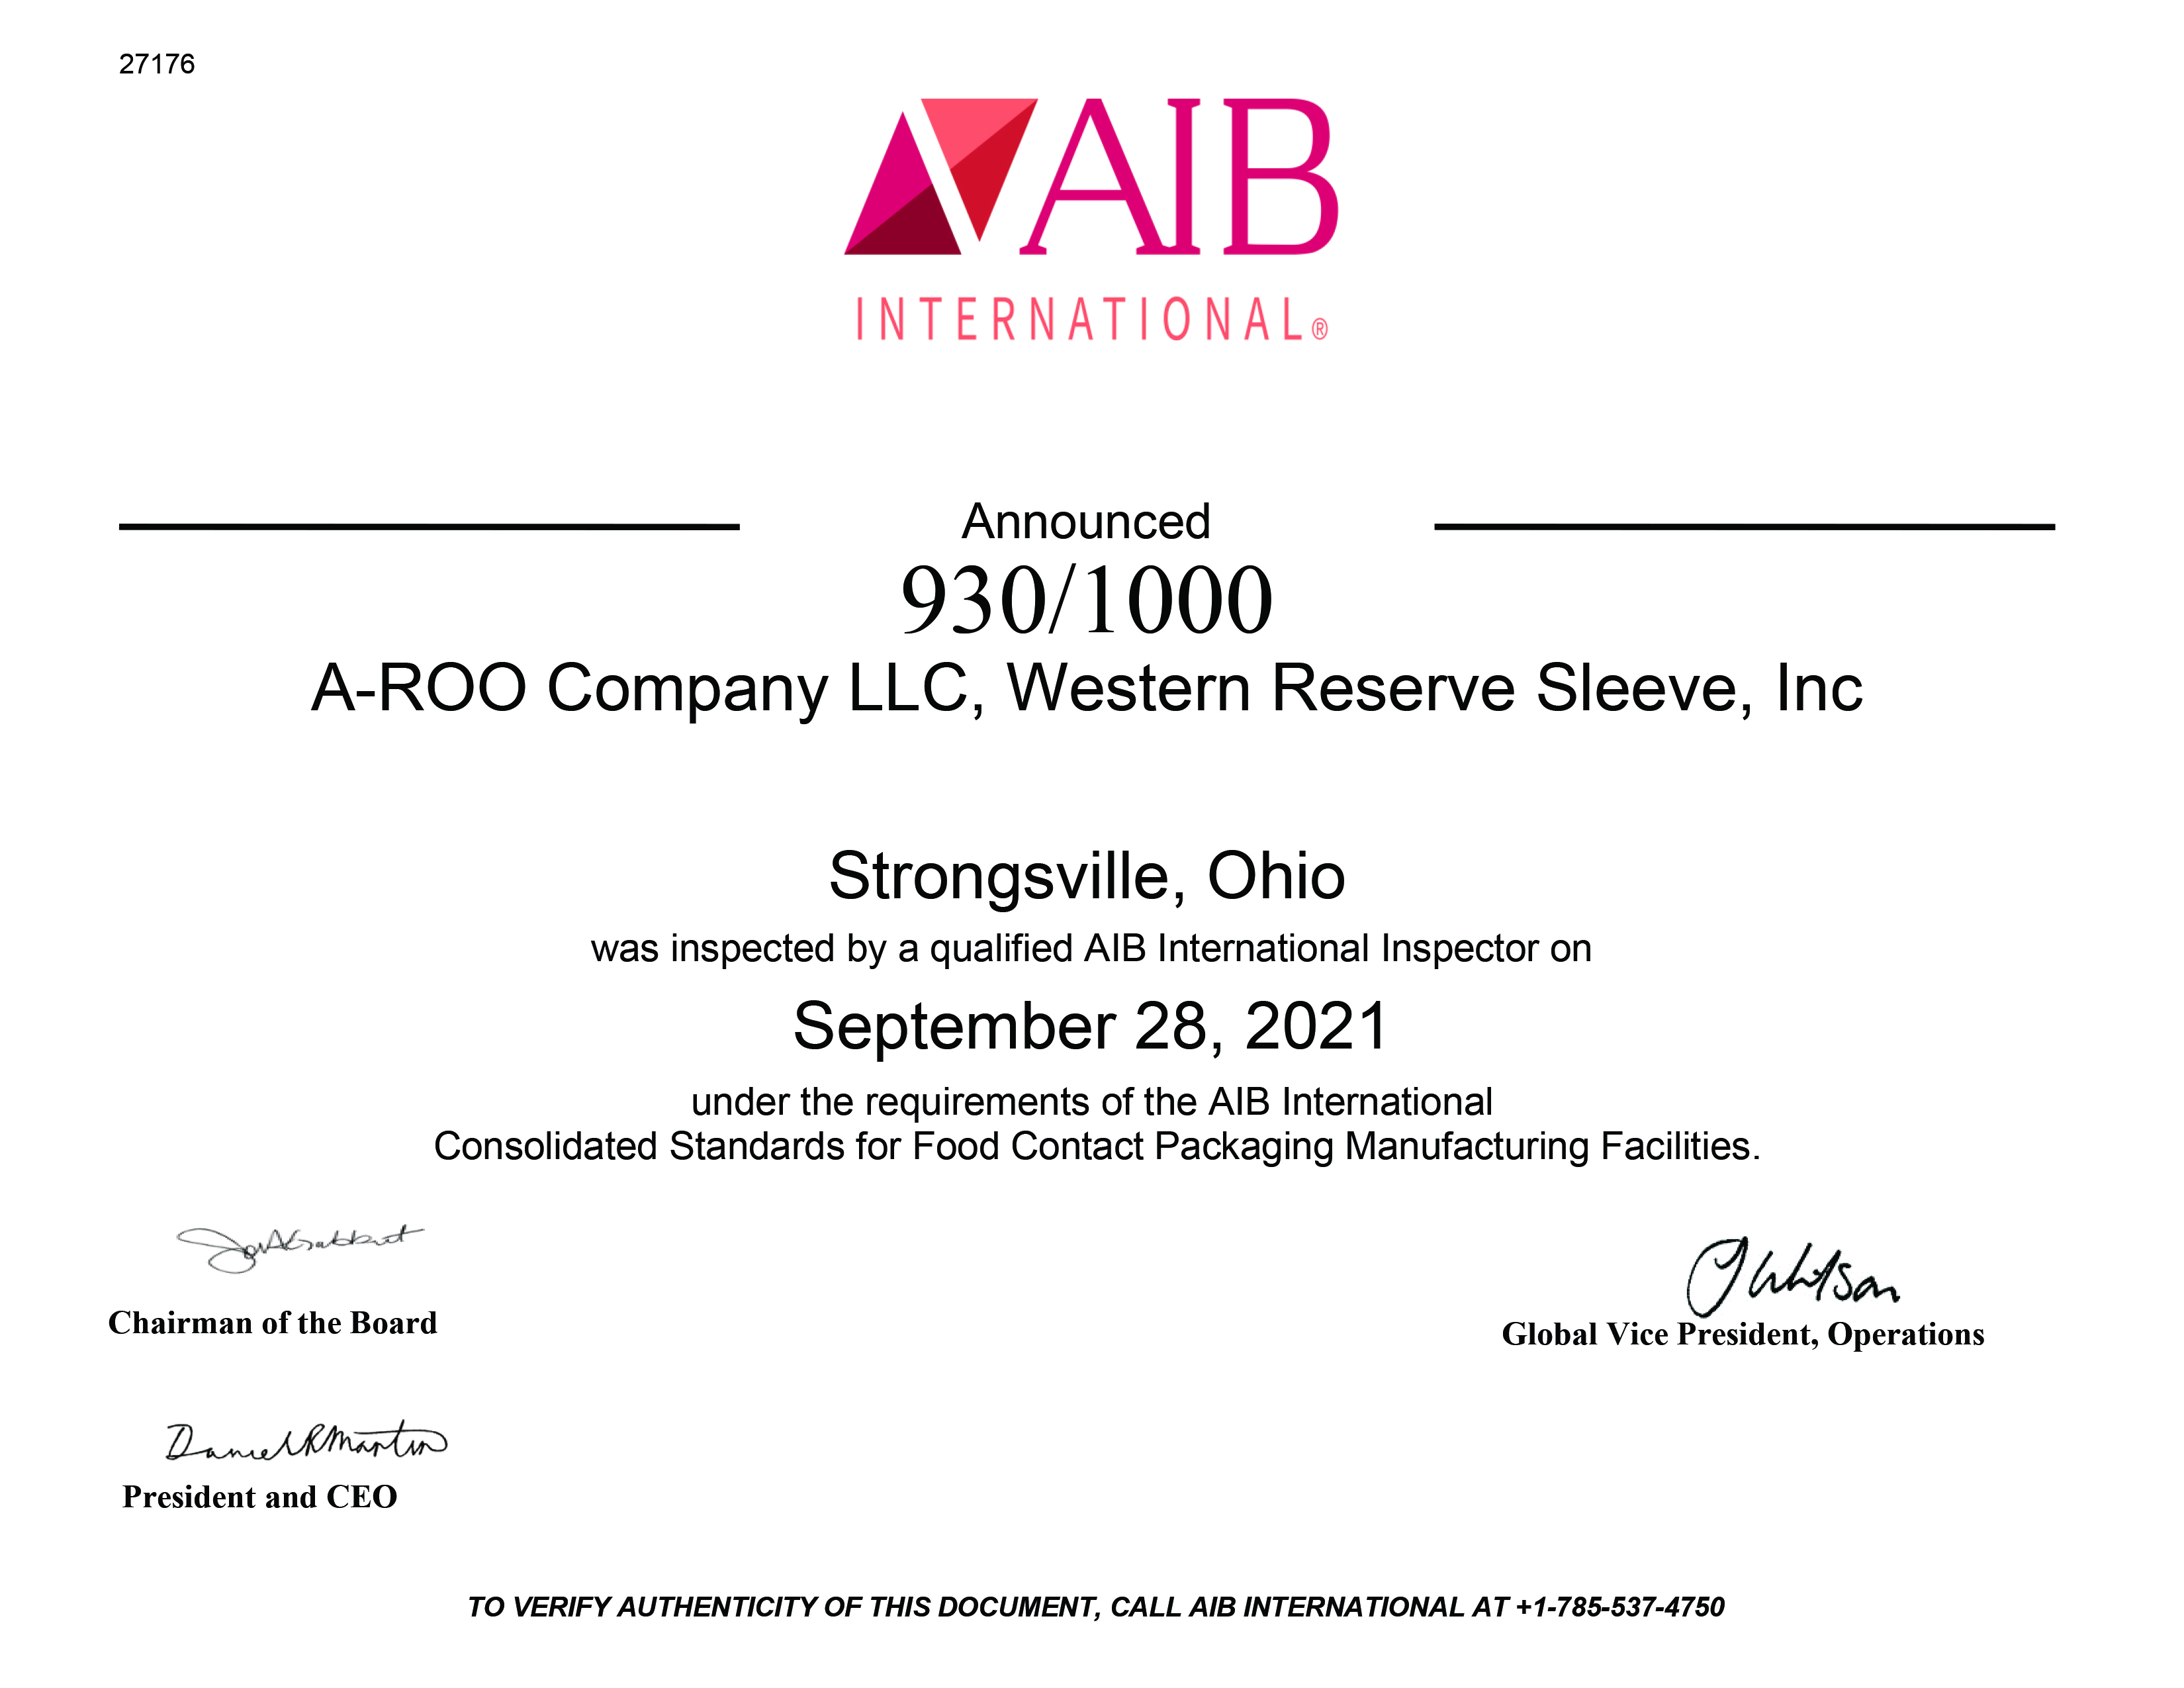 Food Safety Audit AIB International